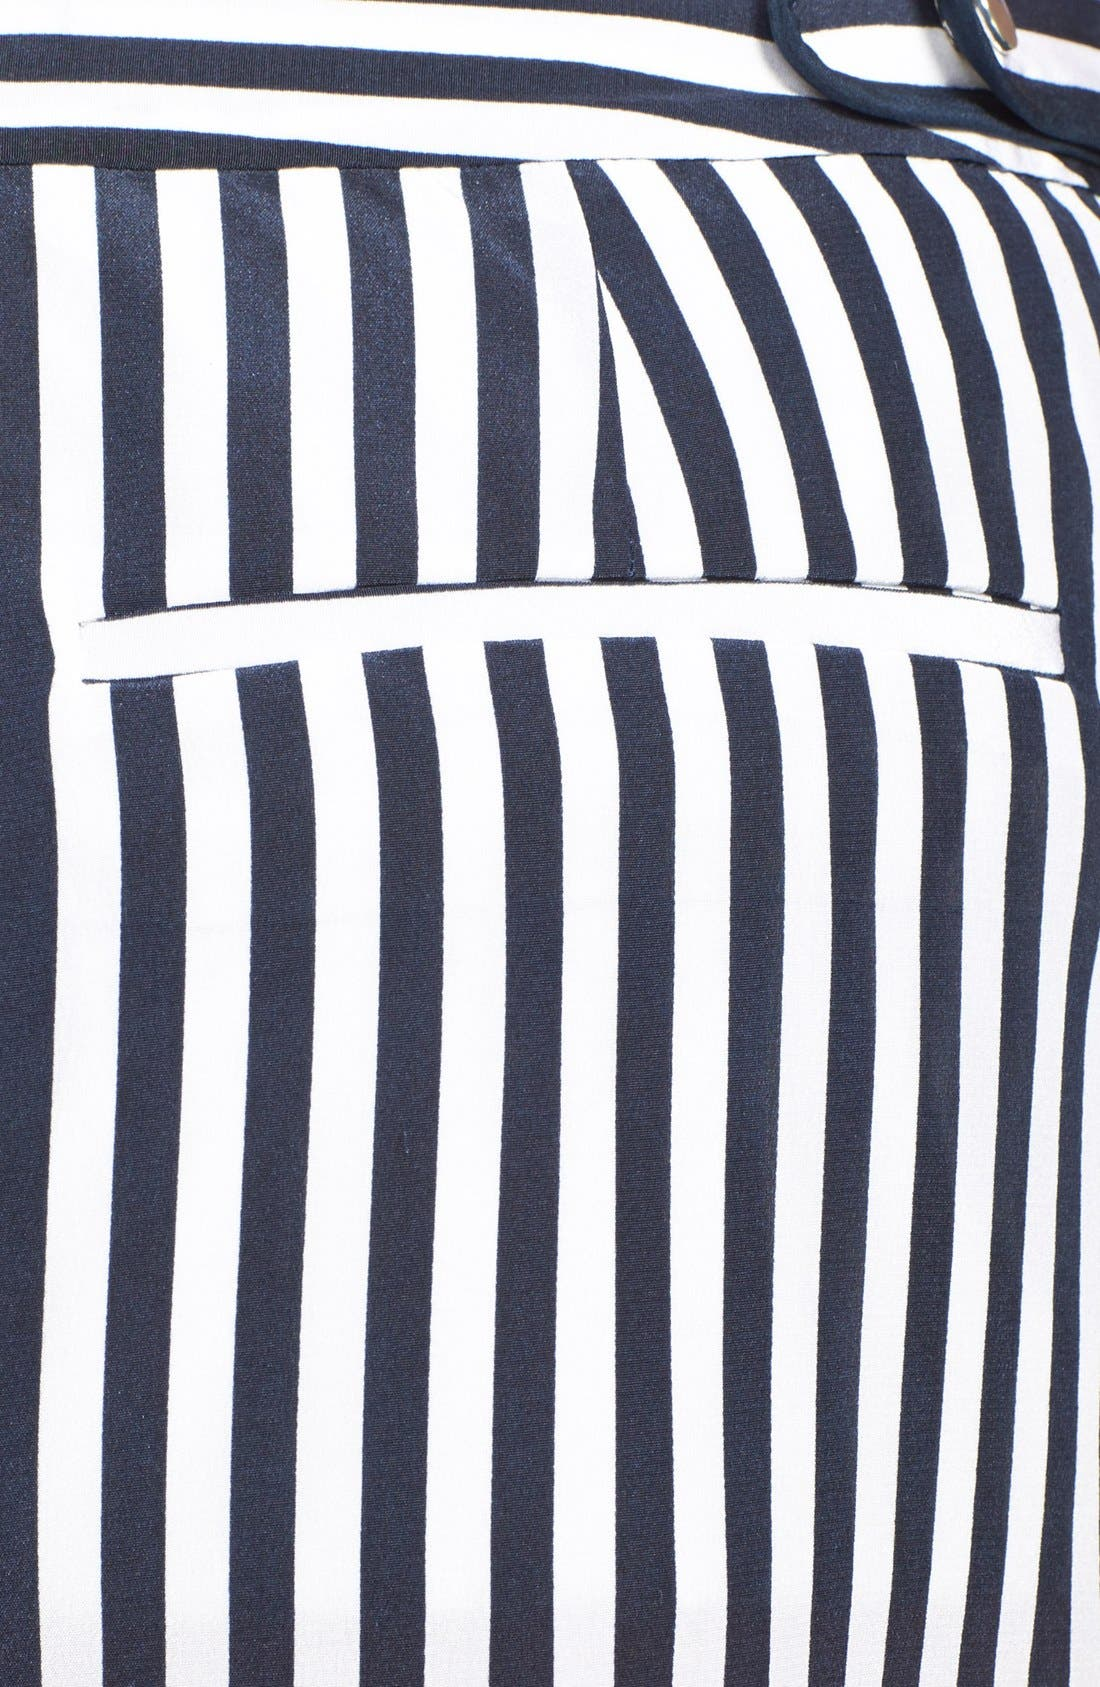 Alternate Image 3  - Diane von Furstenberg 'Tiffany' Stripe Silk Shorts